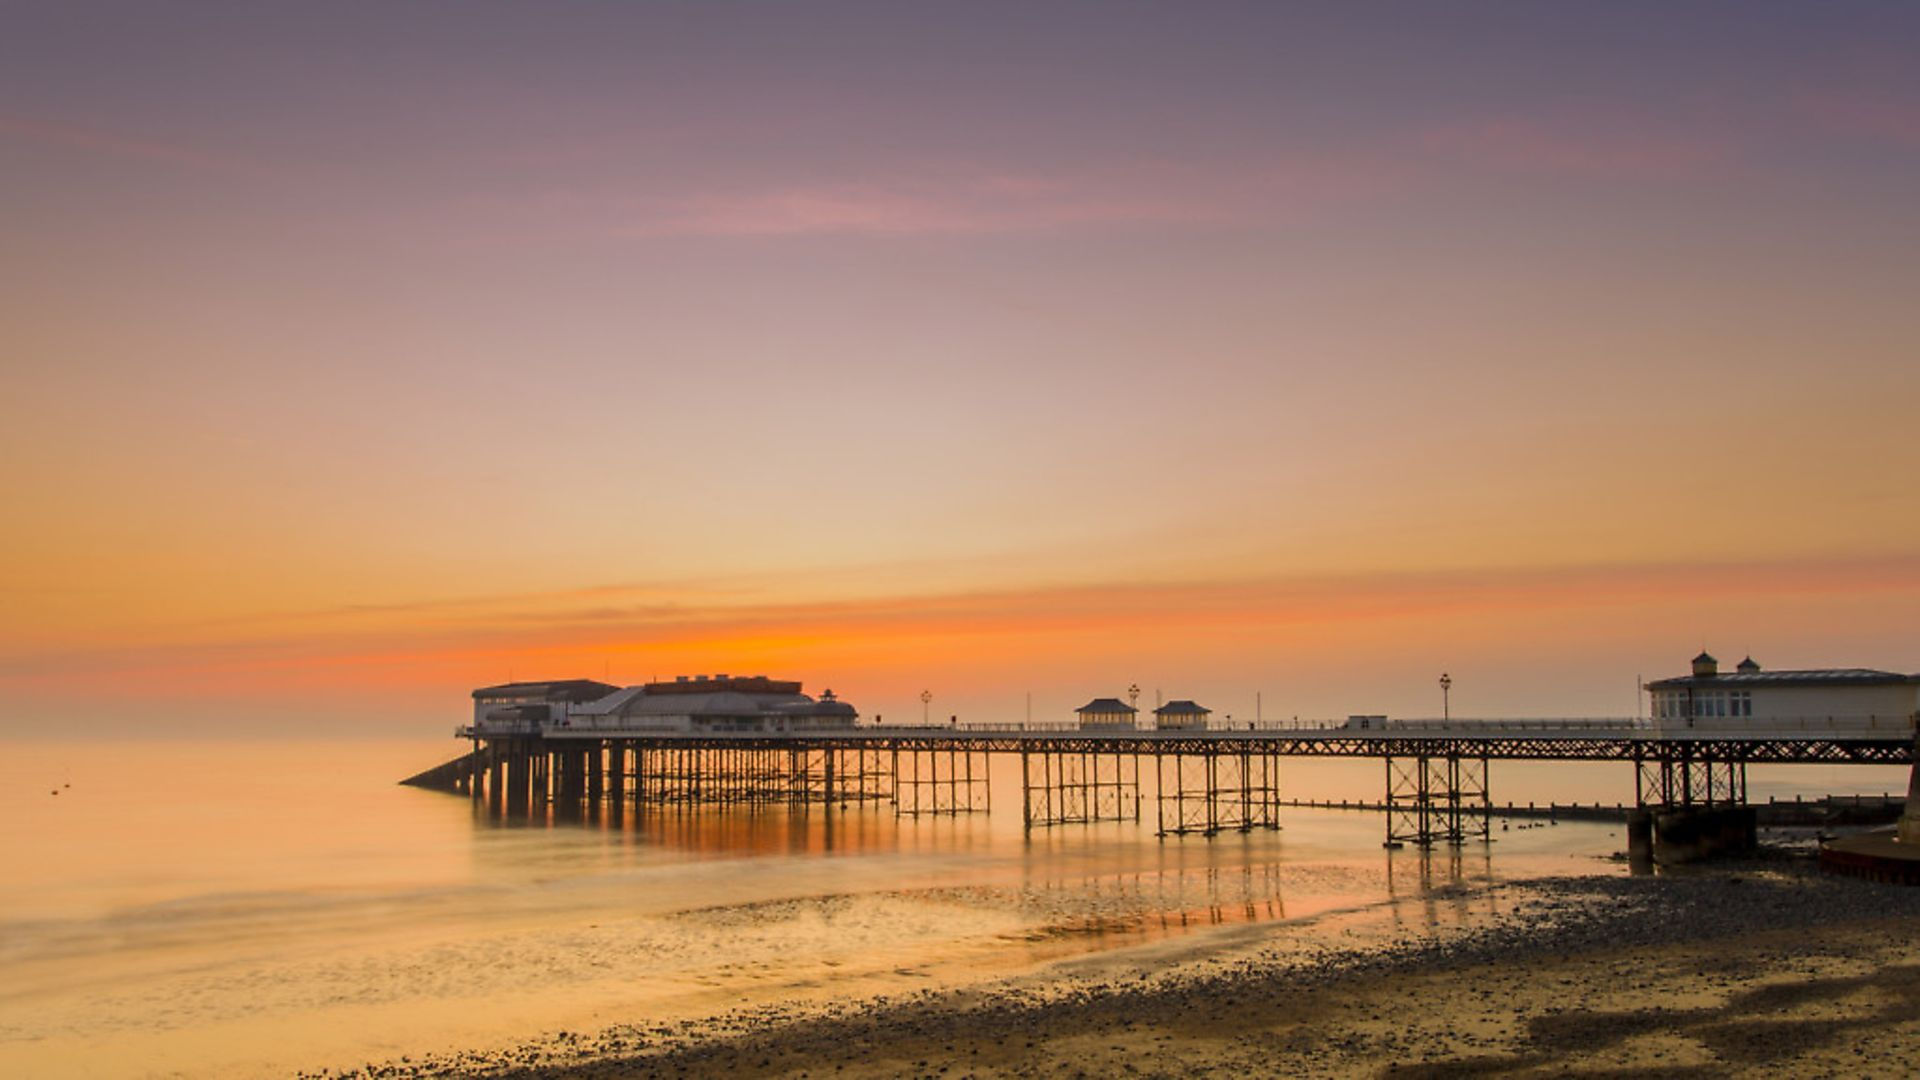 Timeless: Cromer pier at sunrise. (Photo by: Loop Images/Universal Images Group via Getty Images) - Credit: Universal Images Group via Getty